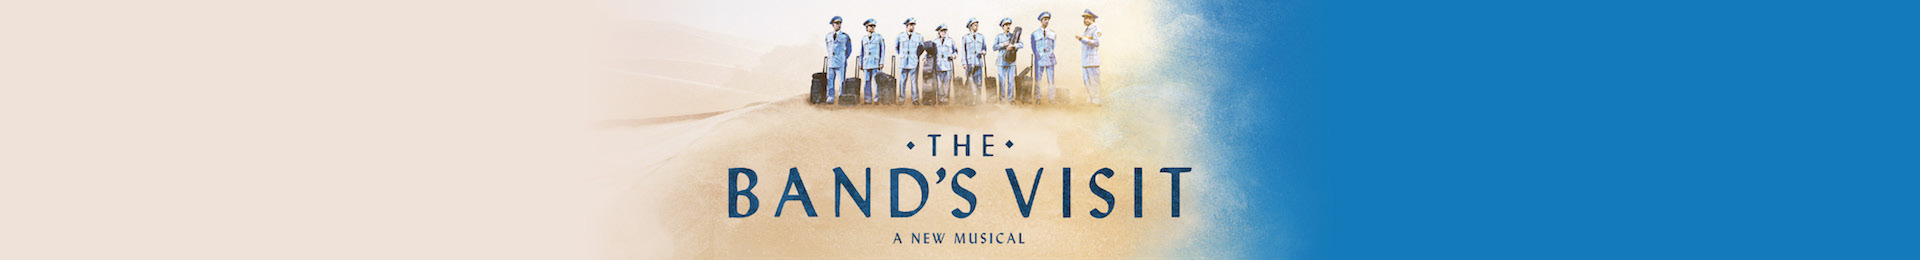 The Band's Visit banner image